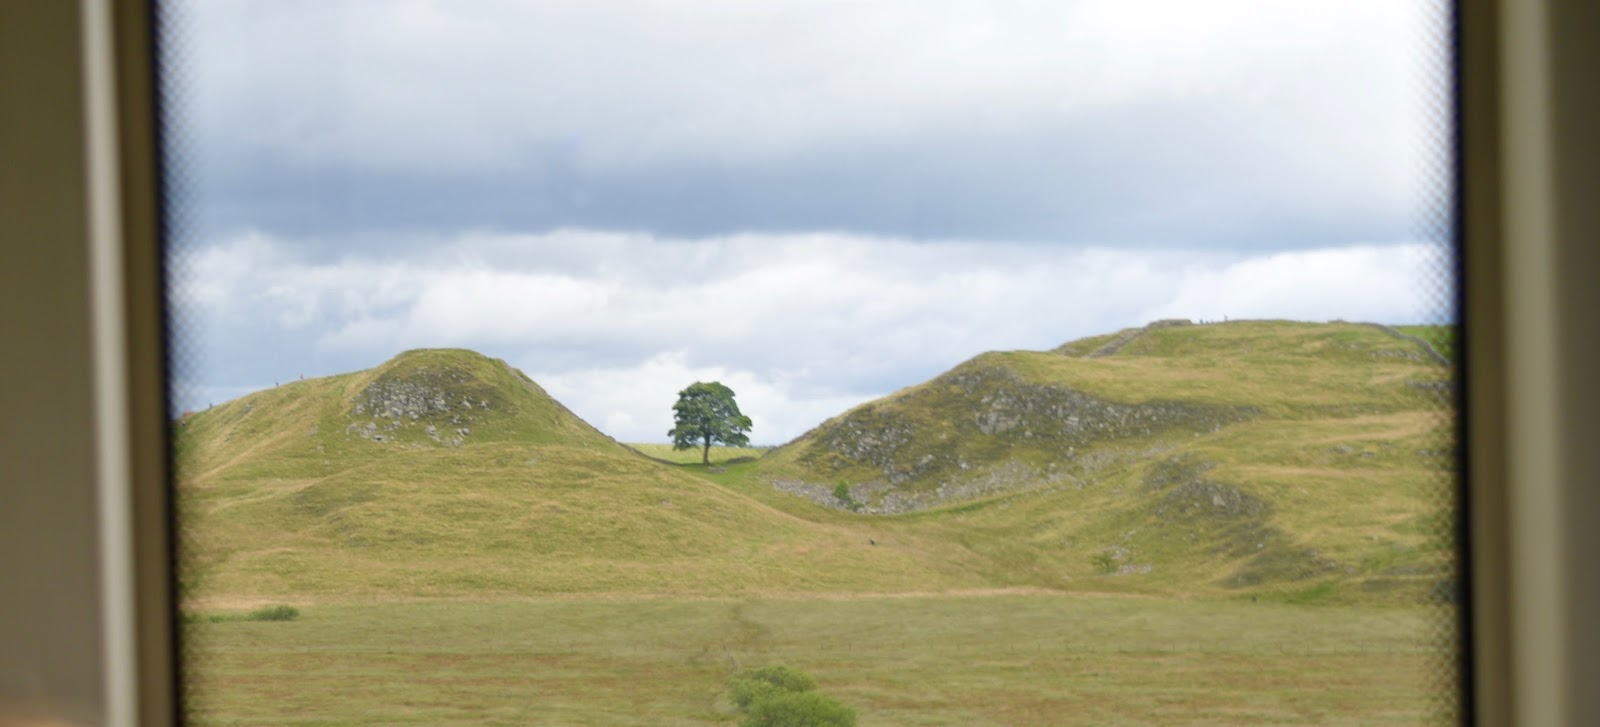 Exploring Hadrian's Wall by Bus with Go North East AD122 - Sycamore gap